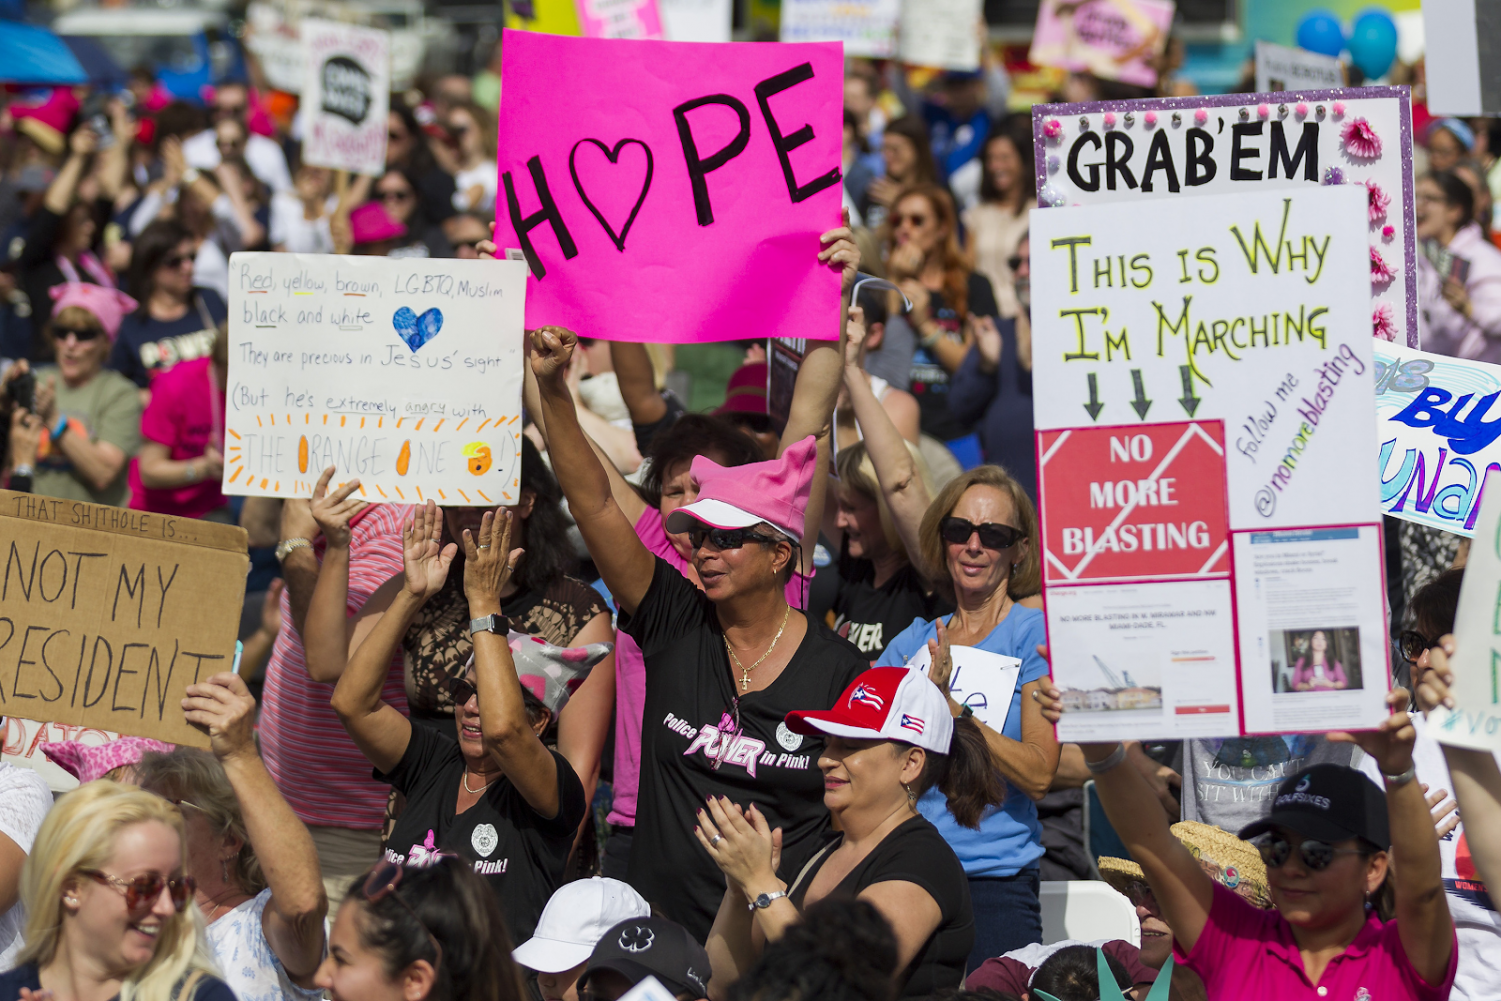 The first annual Woman's March was held on Jan 21, 2017 on every continent.